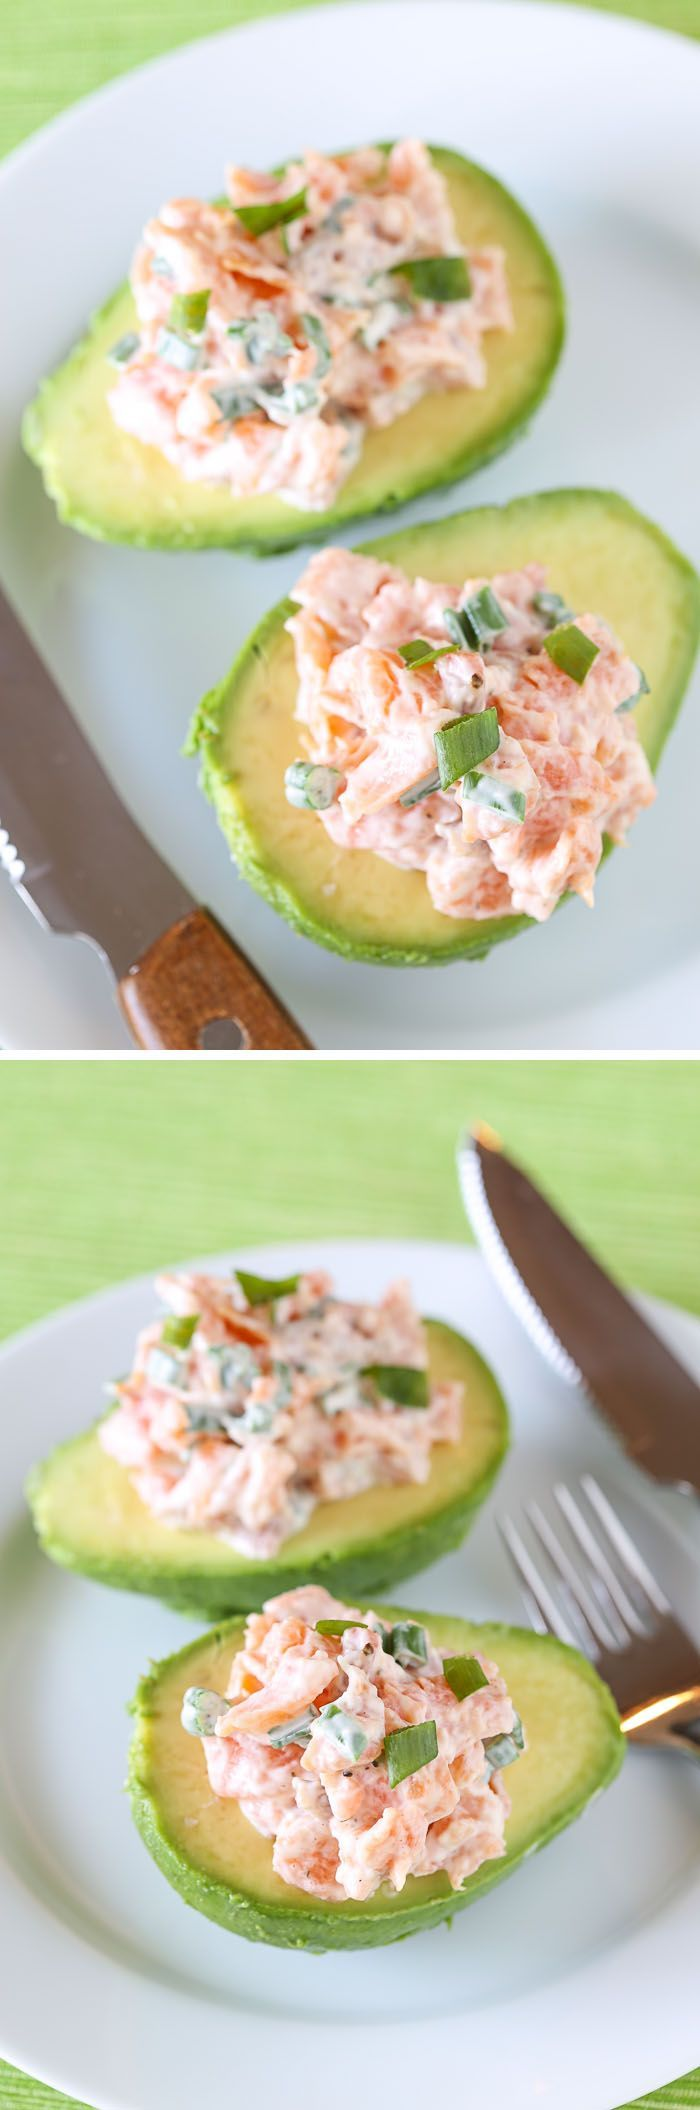 Smoked Salmon in Avocado Boats #salmon #avocado #lunch